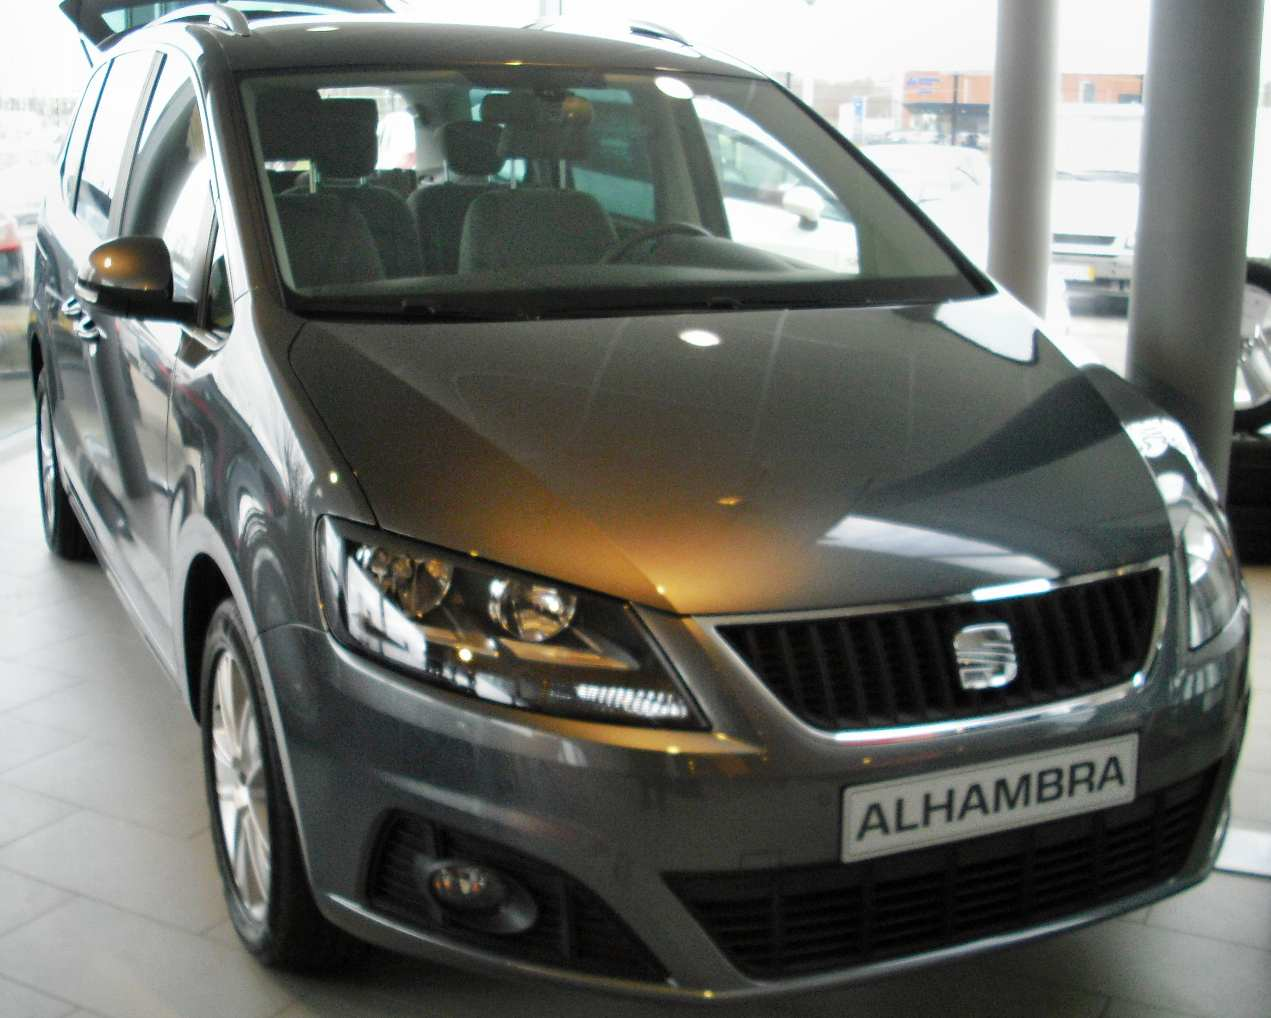 seat alhambra neues modell 2 0 tdi 140 ps ecomotive style 4x4 allrad dsg reference reimport 1 4. Black Bedroom Furniture Sets. Home Design Ideas